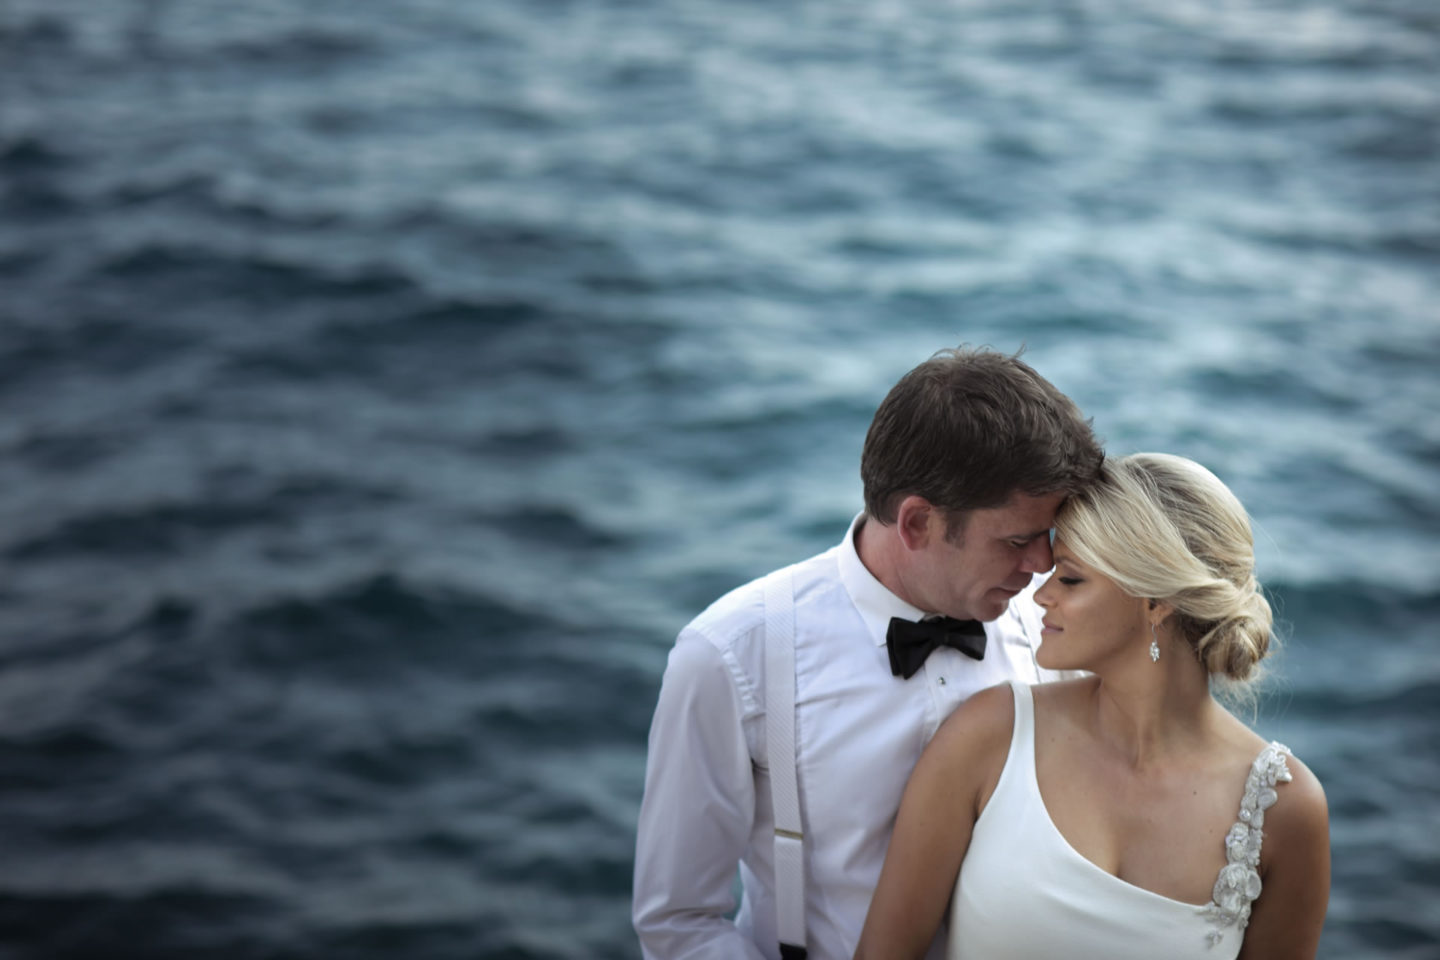 Waves :: Wedding in Positano. Sea and love :: Wedding photographer based in Florence Tuscany Italy :: photo-39 :: Waves